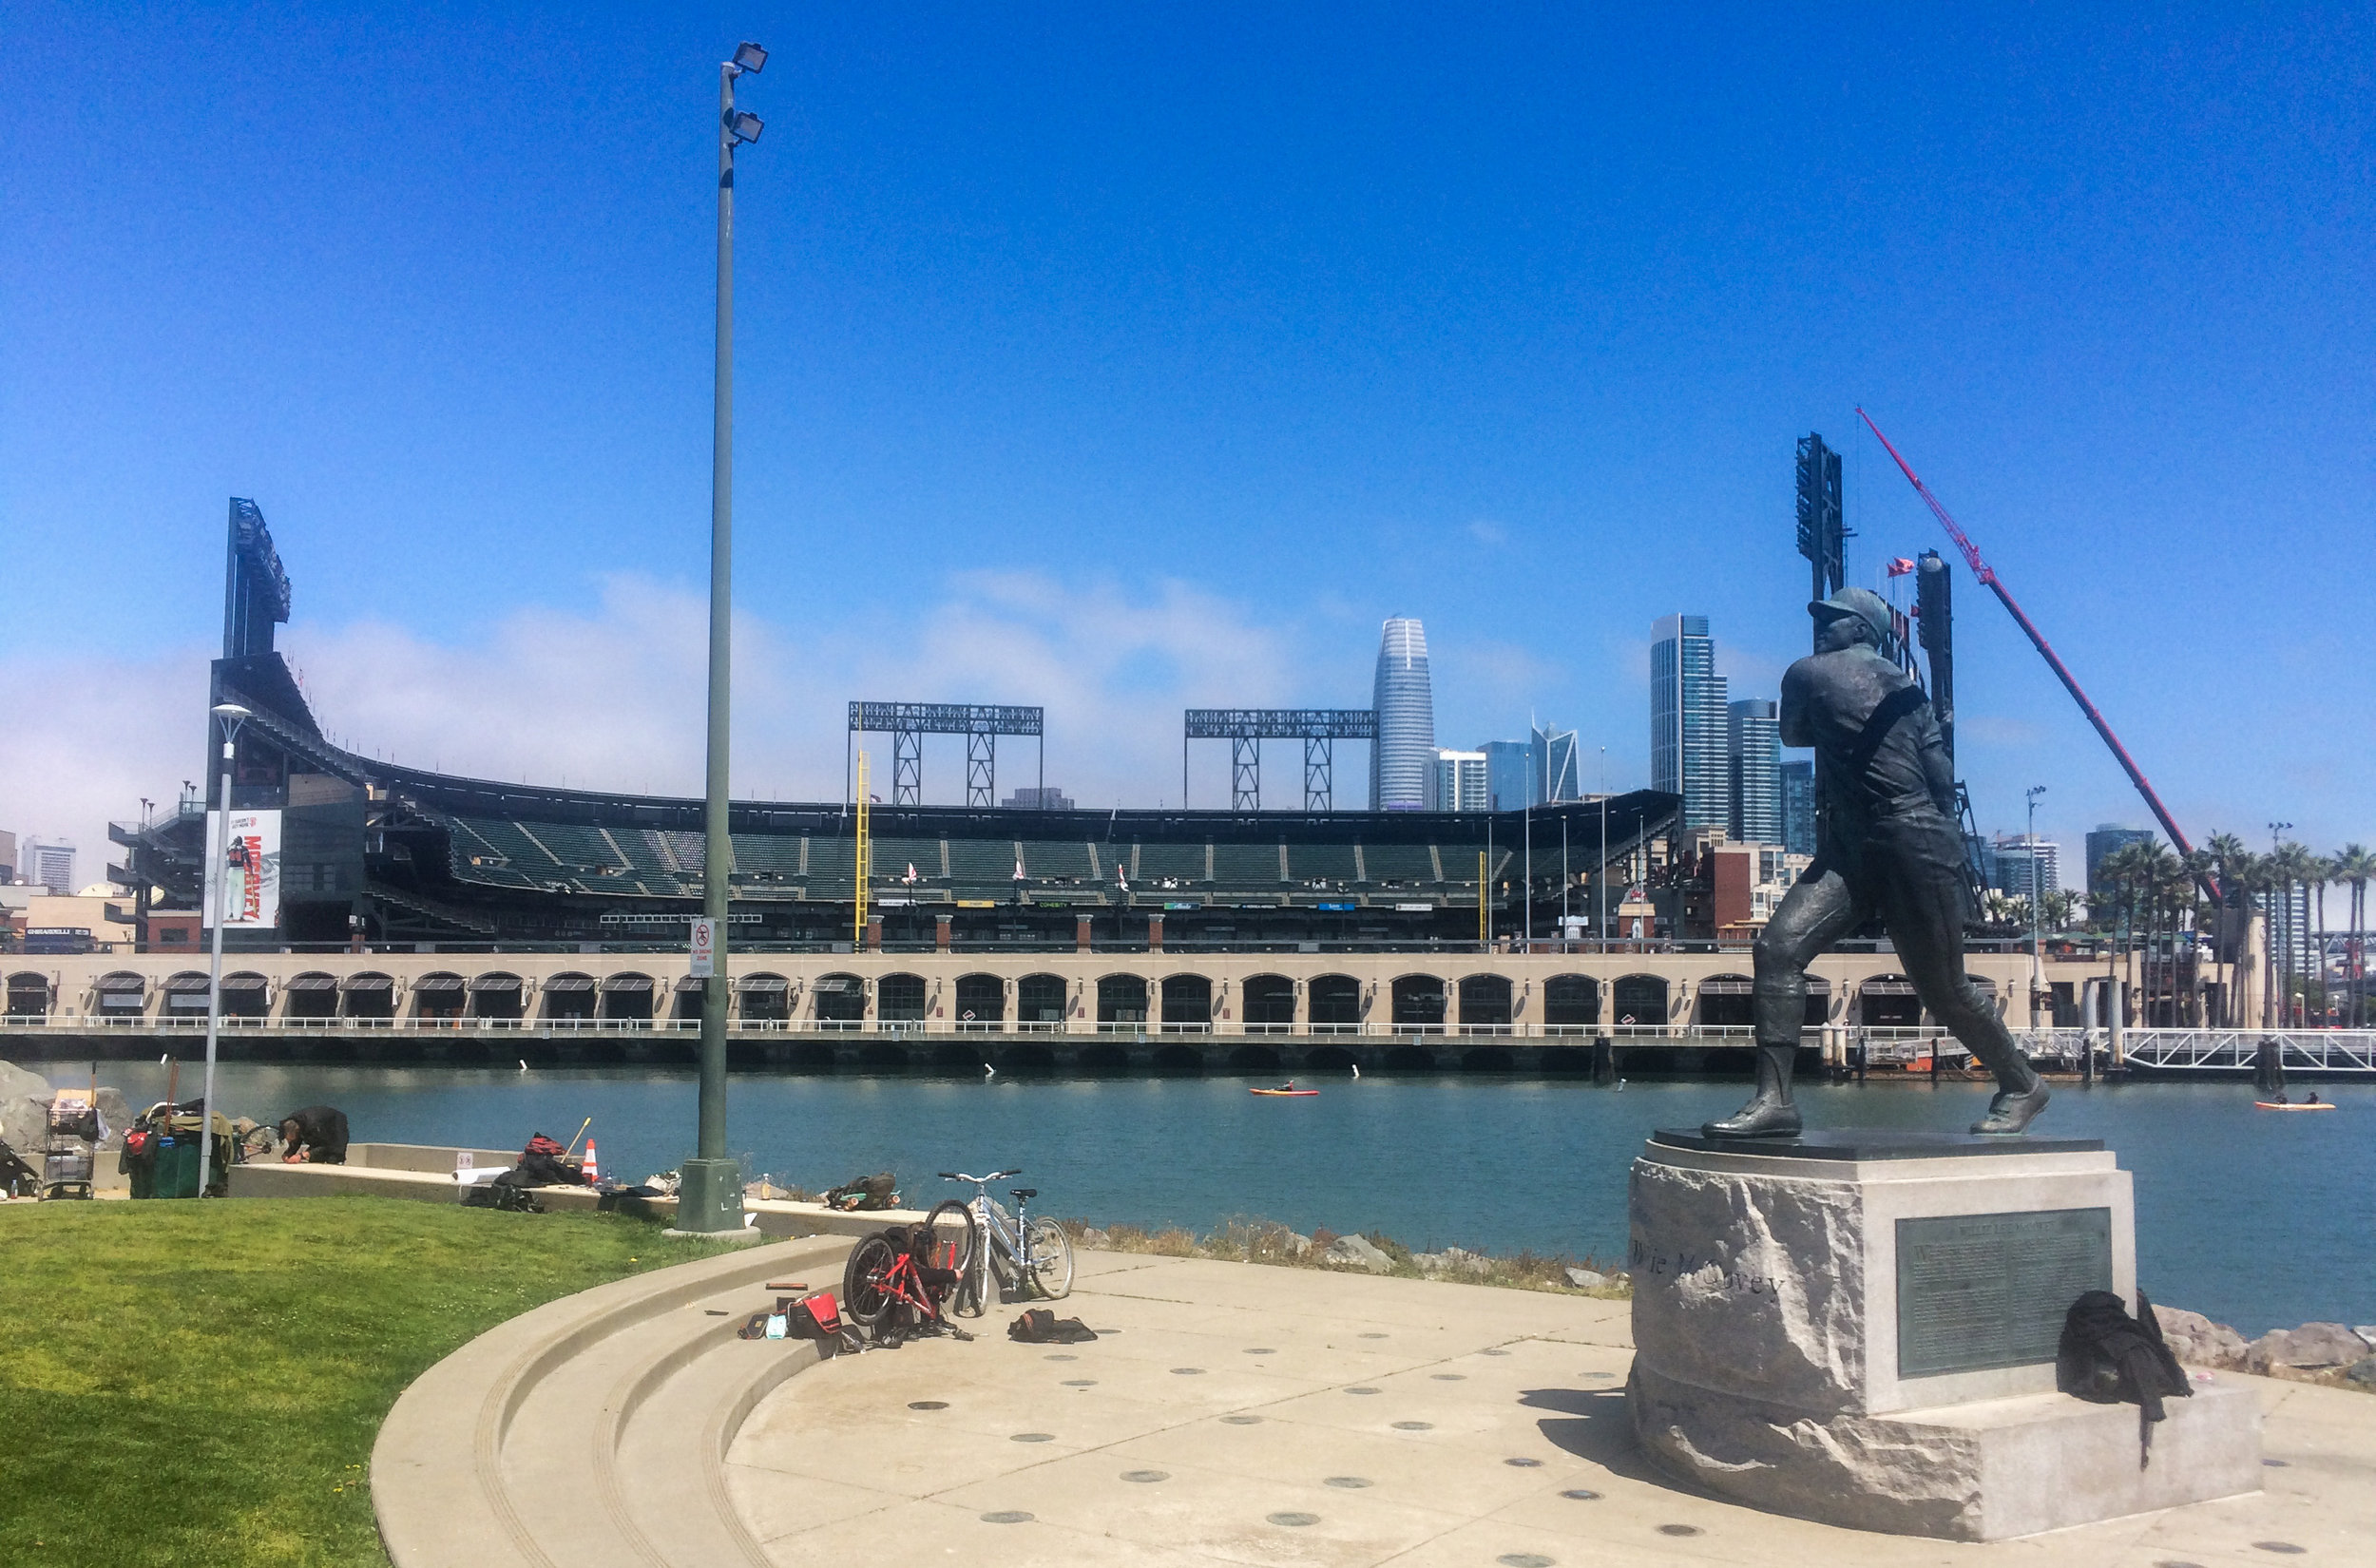 Hiking along McCovey Cove on the back side of the Oracle Park. Go Giants!